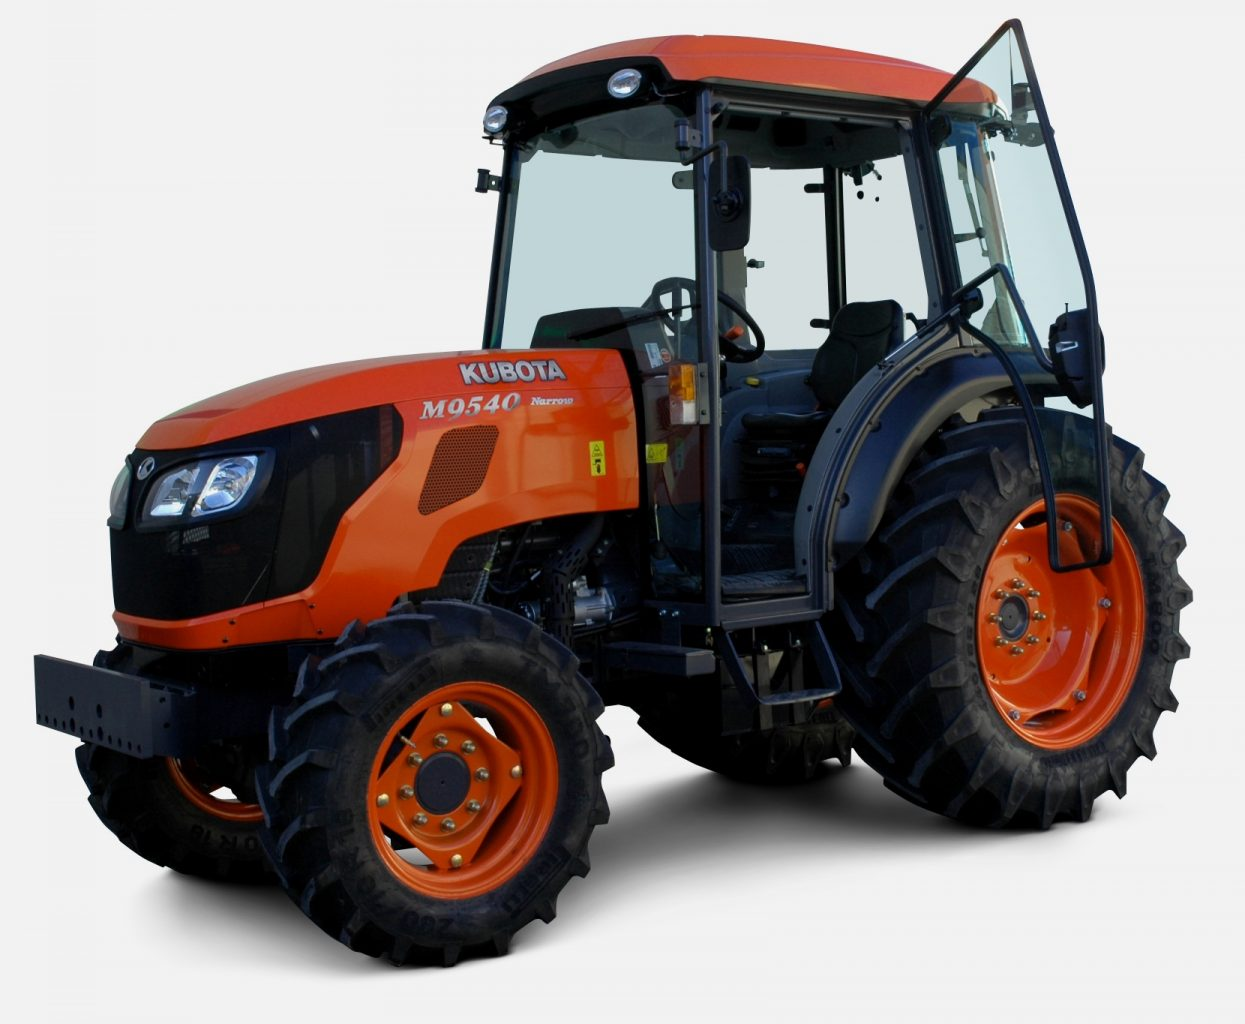 Kubota Tractor M : Kubota m price implements specs key featurs review